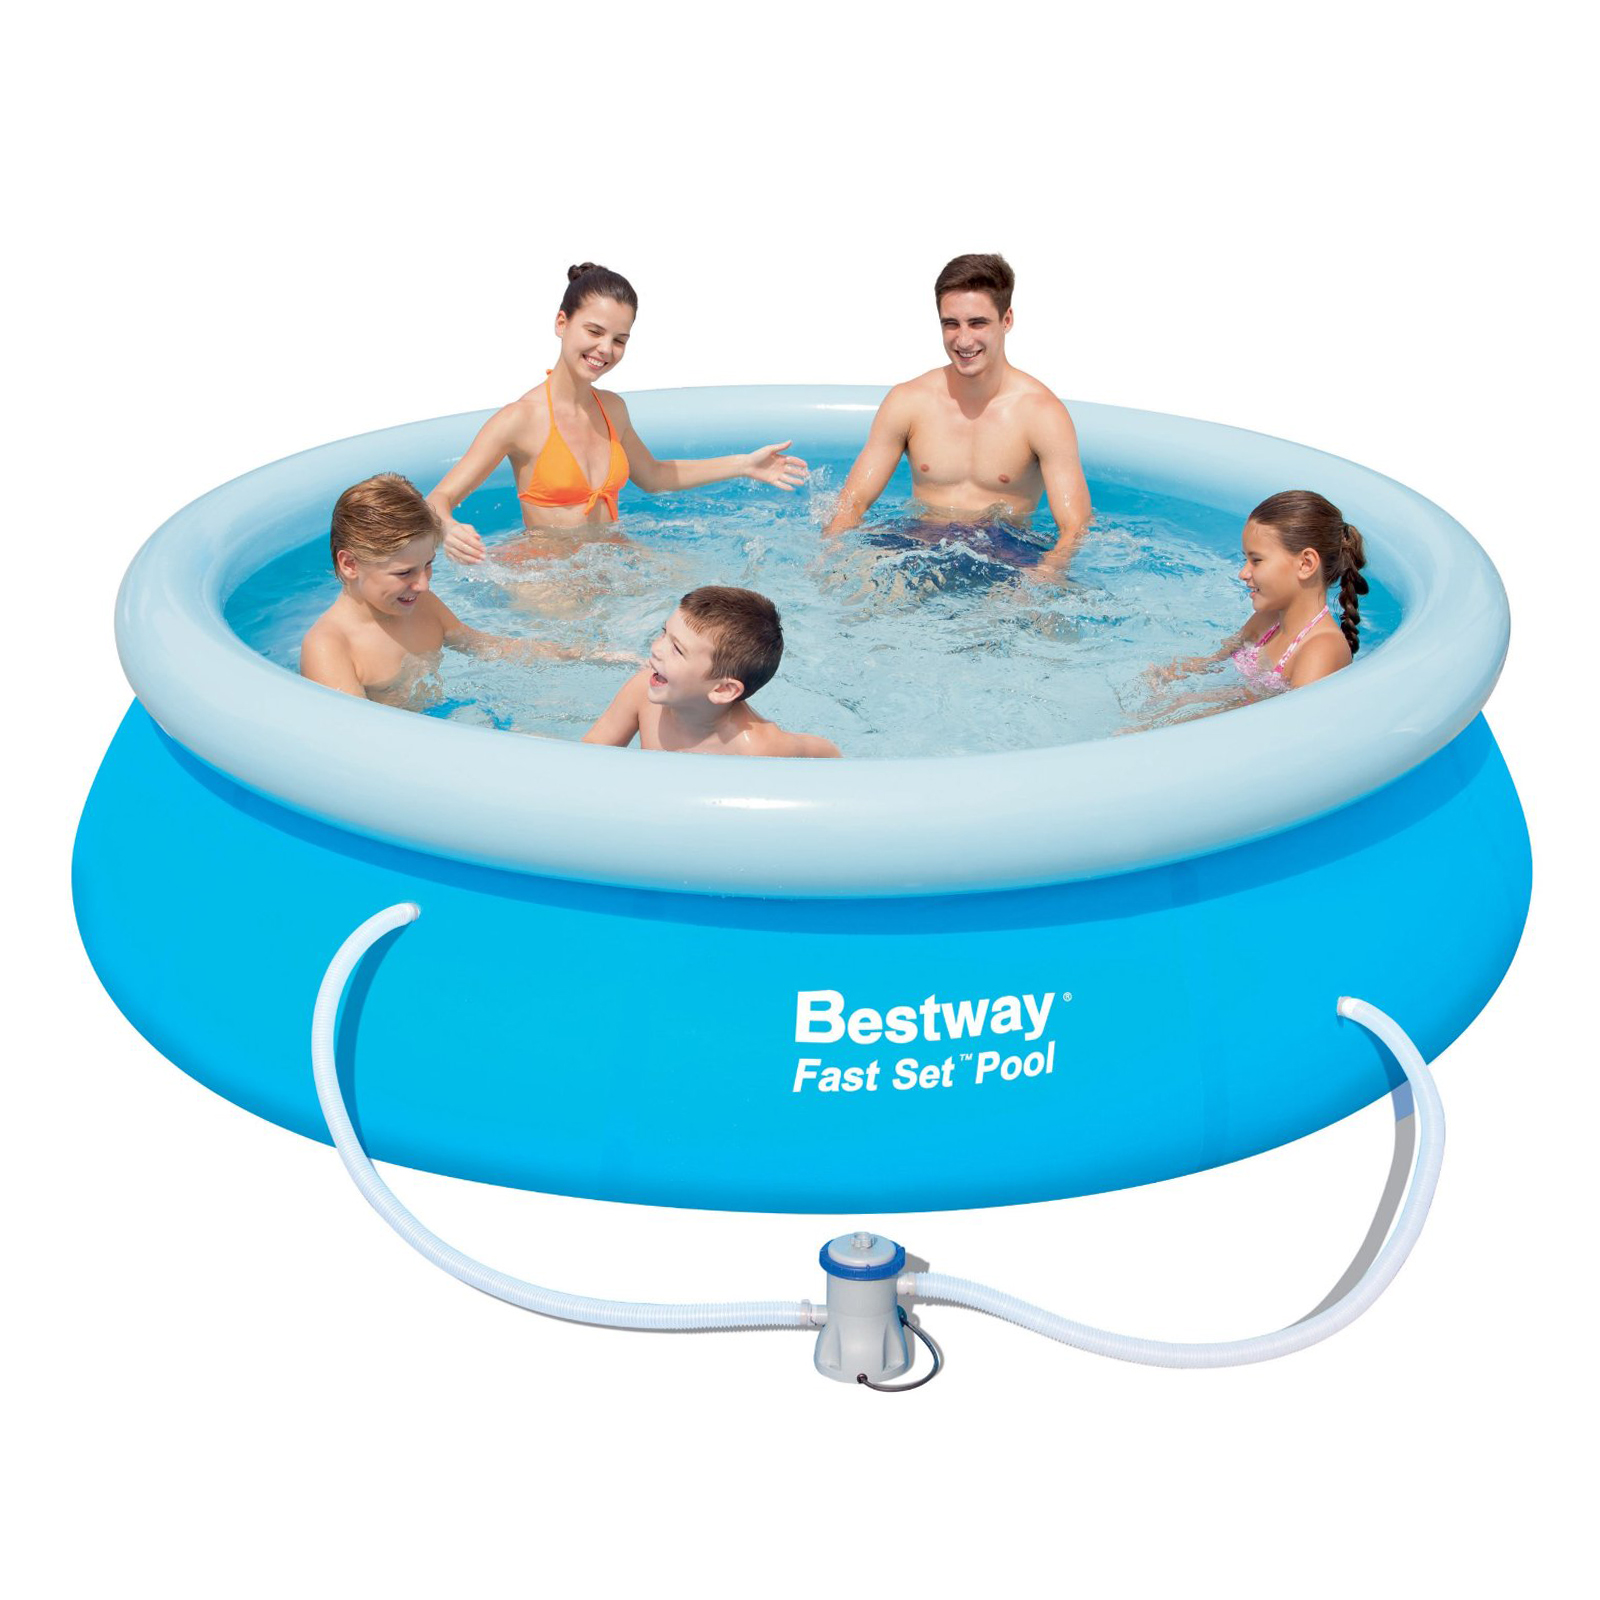 Swimming pool paddling garden family fun outdoor for Family garden pool